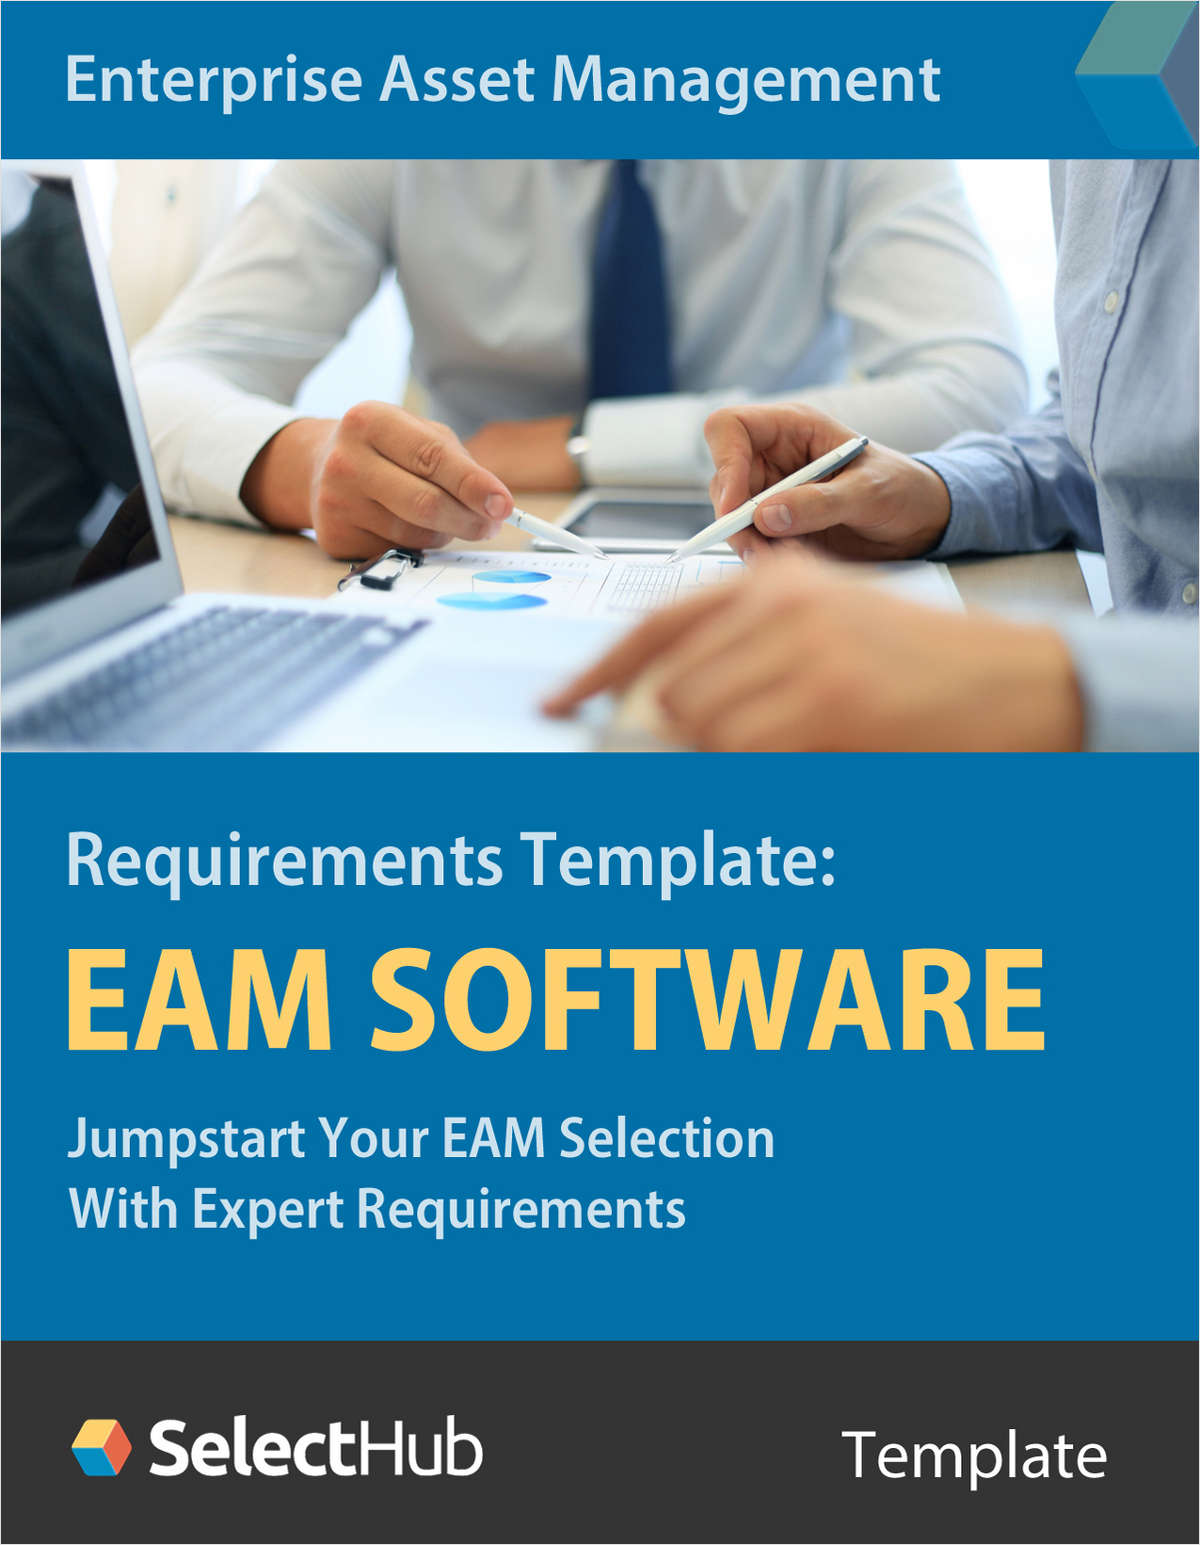 Enterprise Asset Management (EAM) Software Requirements Template